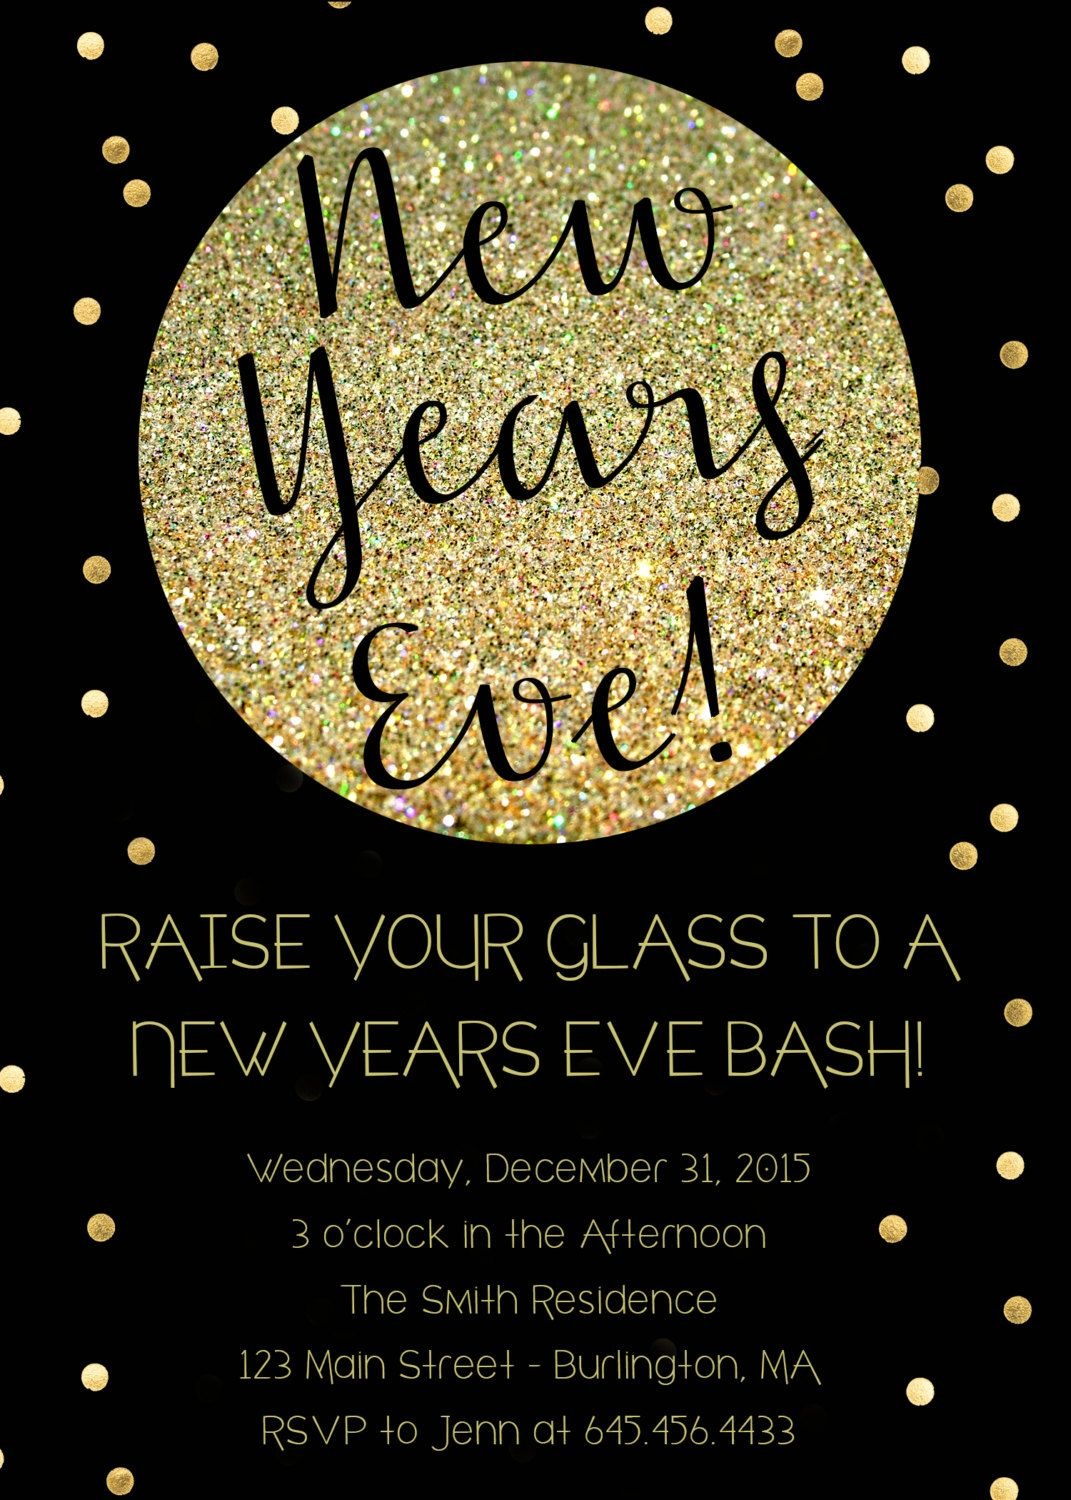 New Years Eve Party Invitation in Black and Gold Glitter